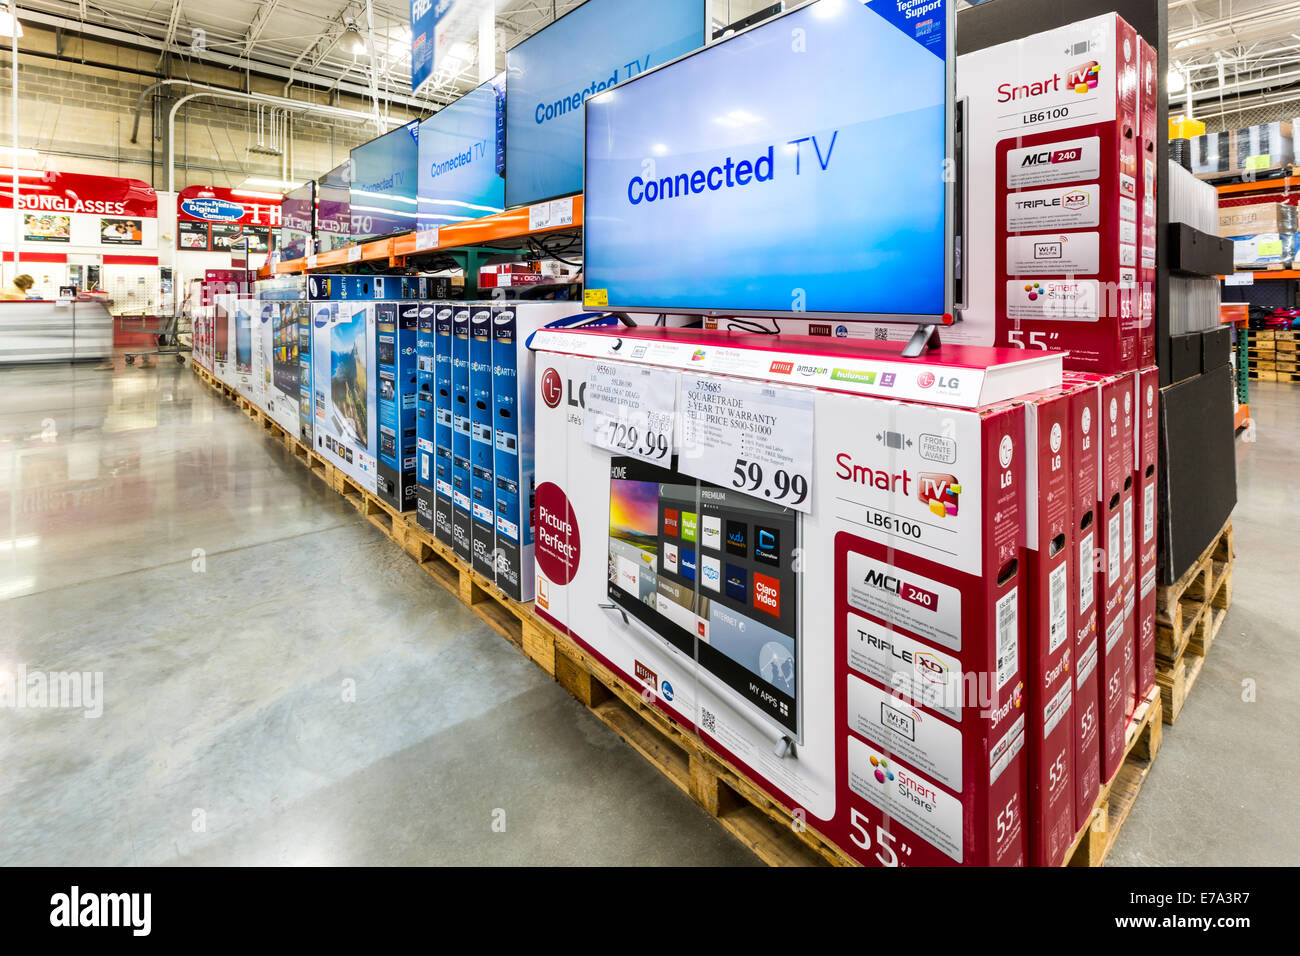 Plat allée dans un magasin Costco. Photo Stock